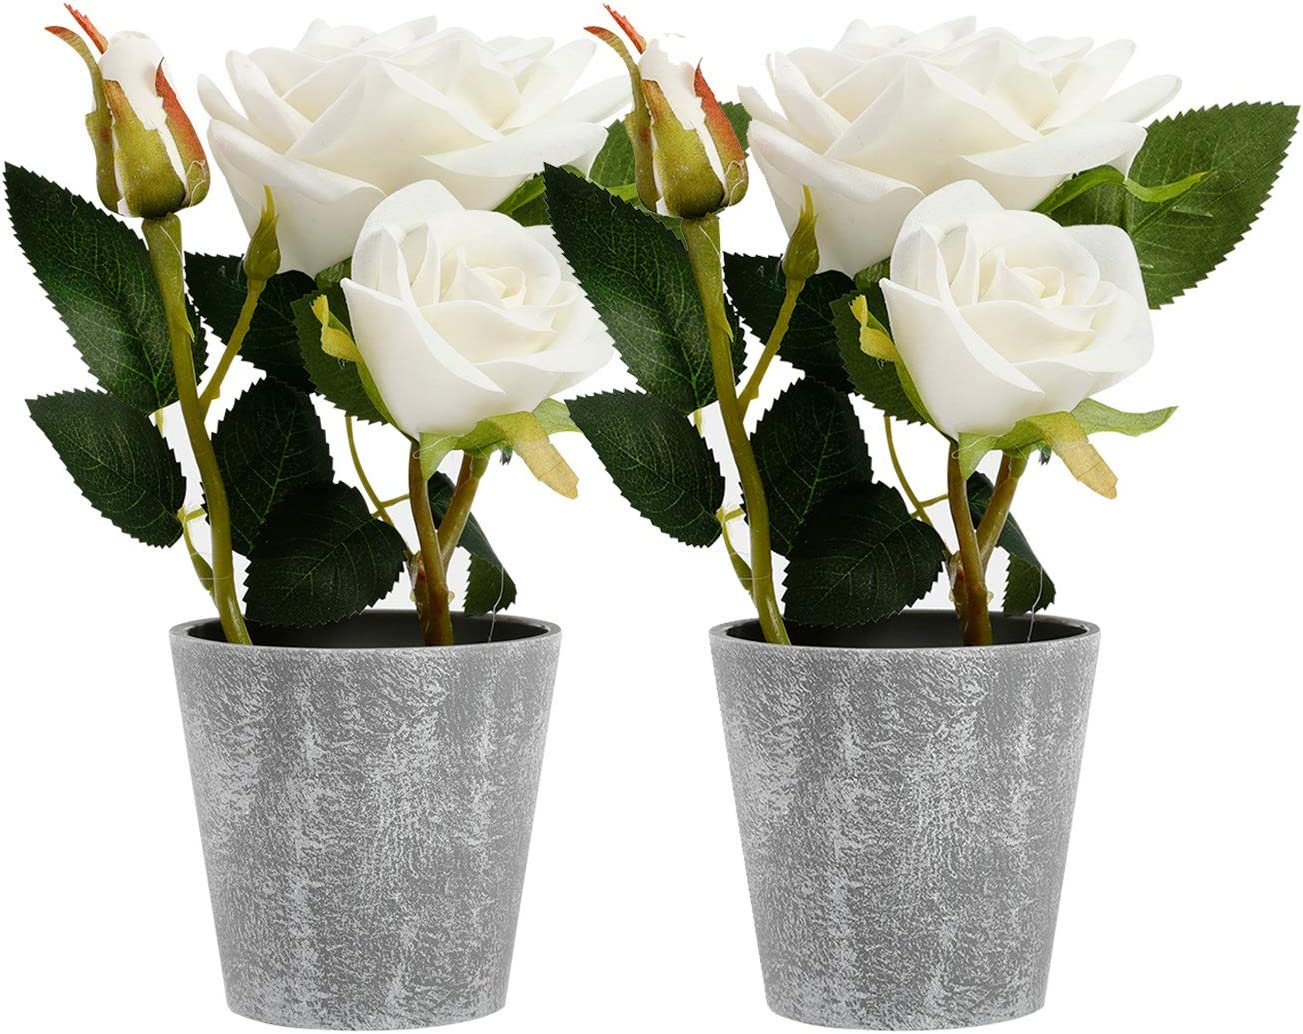 Azoco Artificial Flowers with Vase Flow Silk in Fake Pot SALENEW very Cheap bargain popular